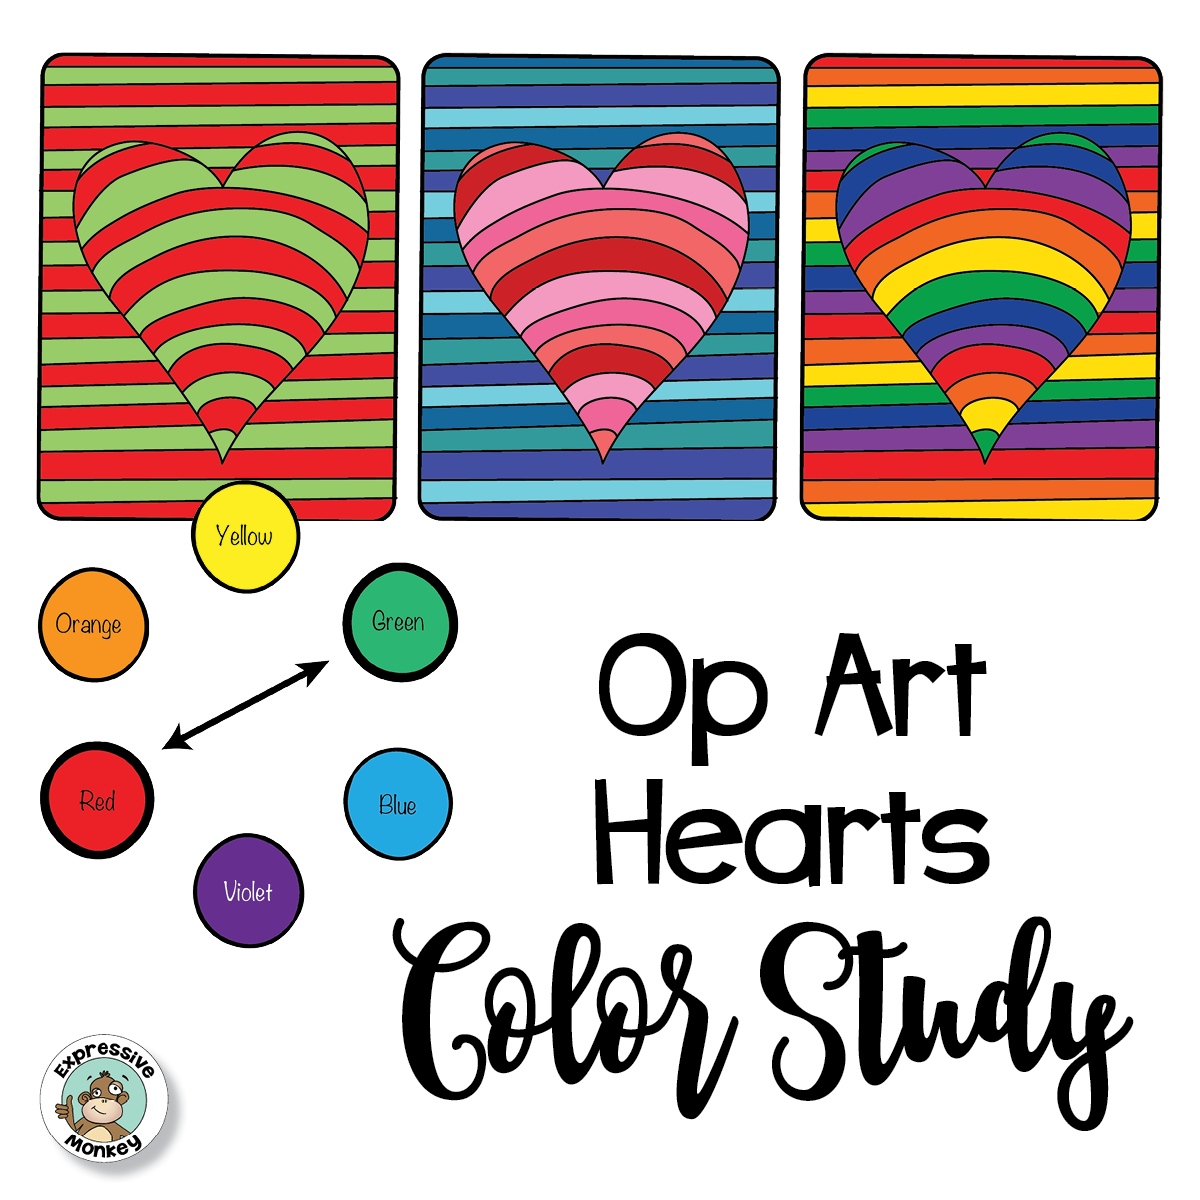 4 Ways That You Can Use A Simple Op Art Heart Lesson To Teach Color Theory Including Color